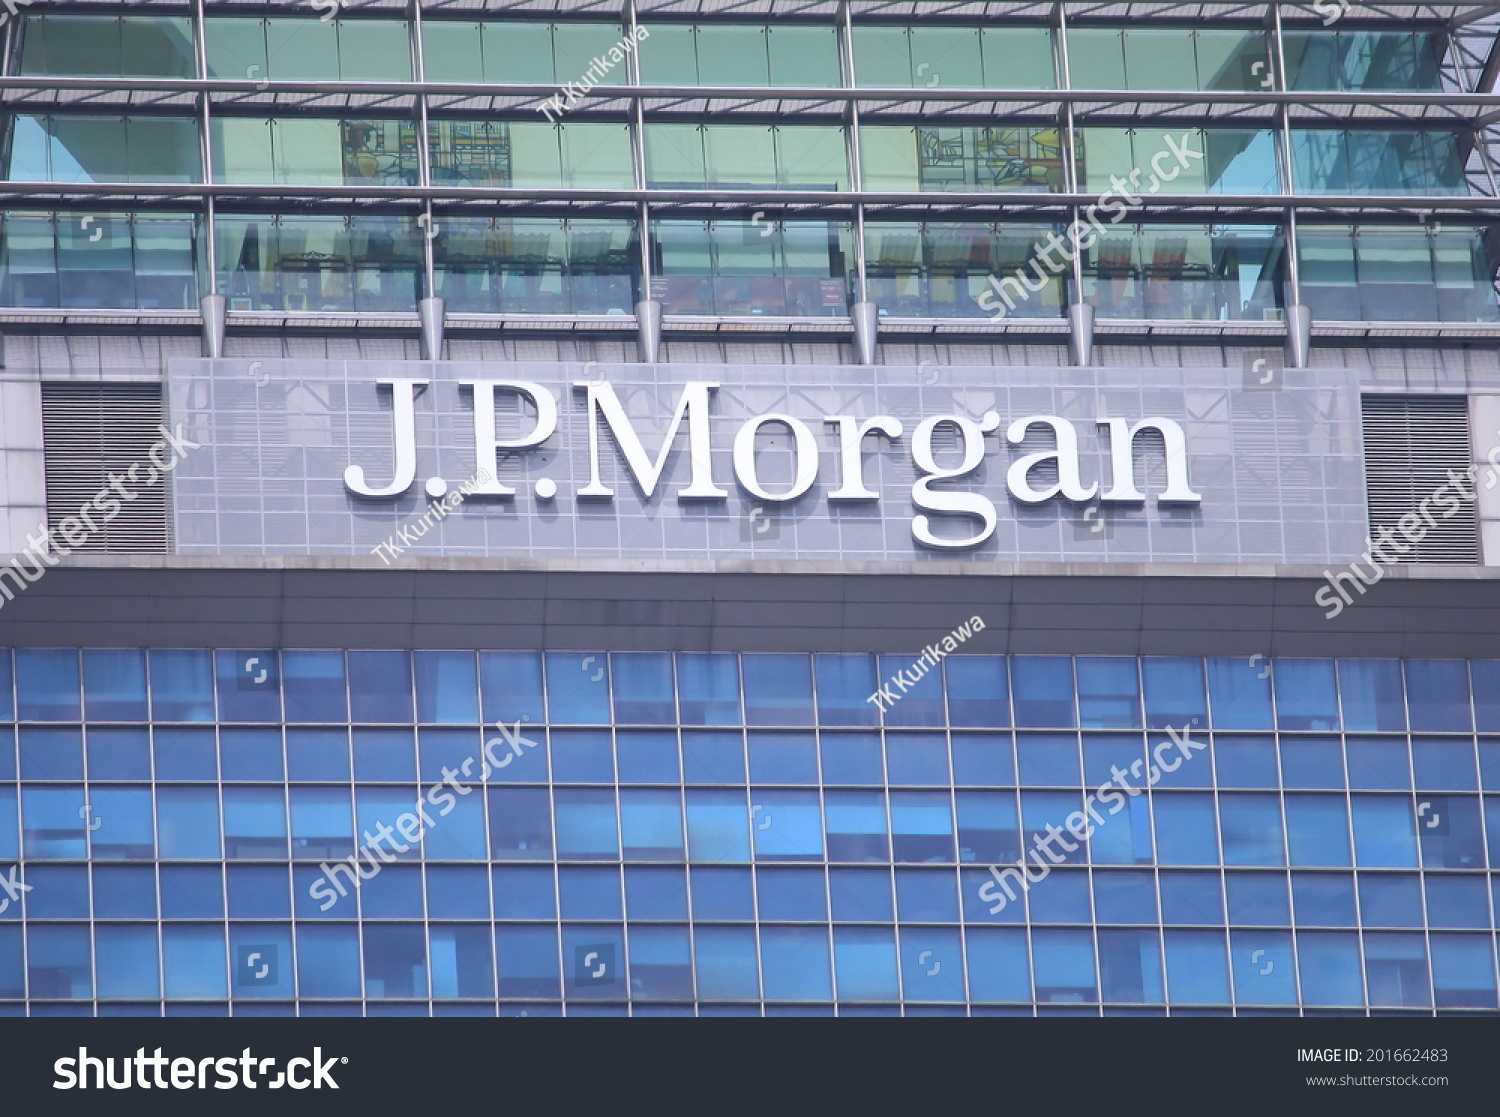 jpmorgan finance group essay Why do you think jpmorgan and merrill lynch were selected to  what was the  role of the leveraged finance group at jpmorgan and why was.